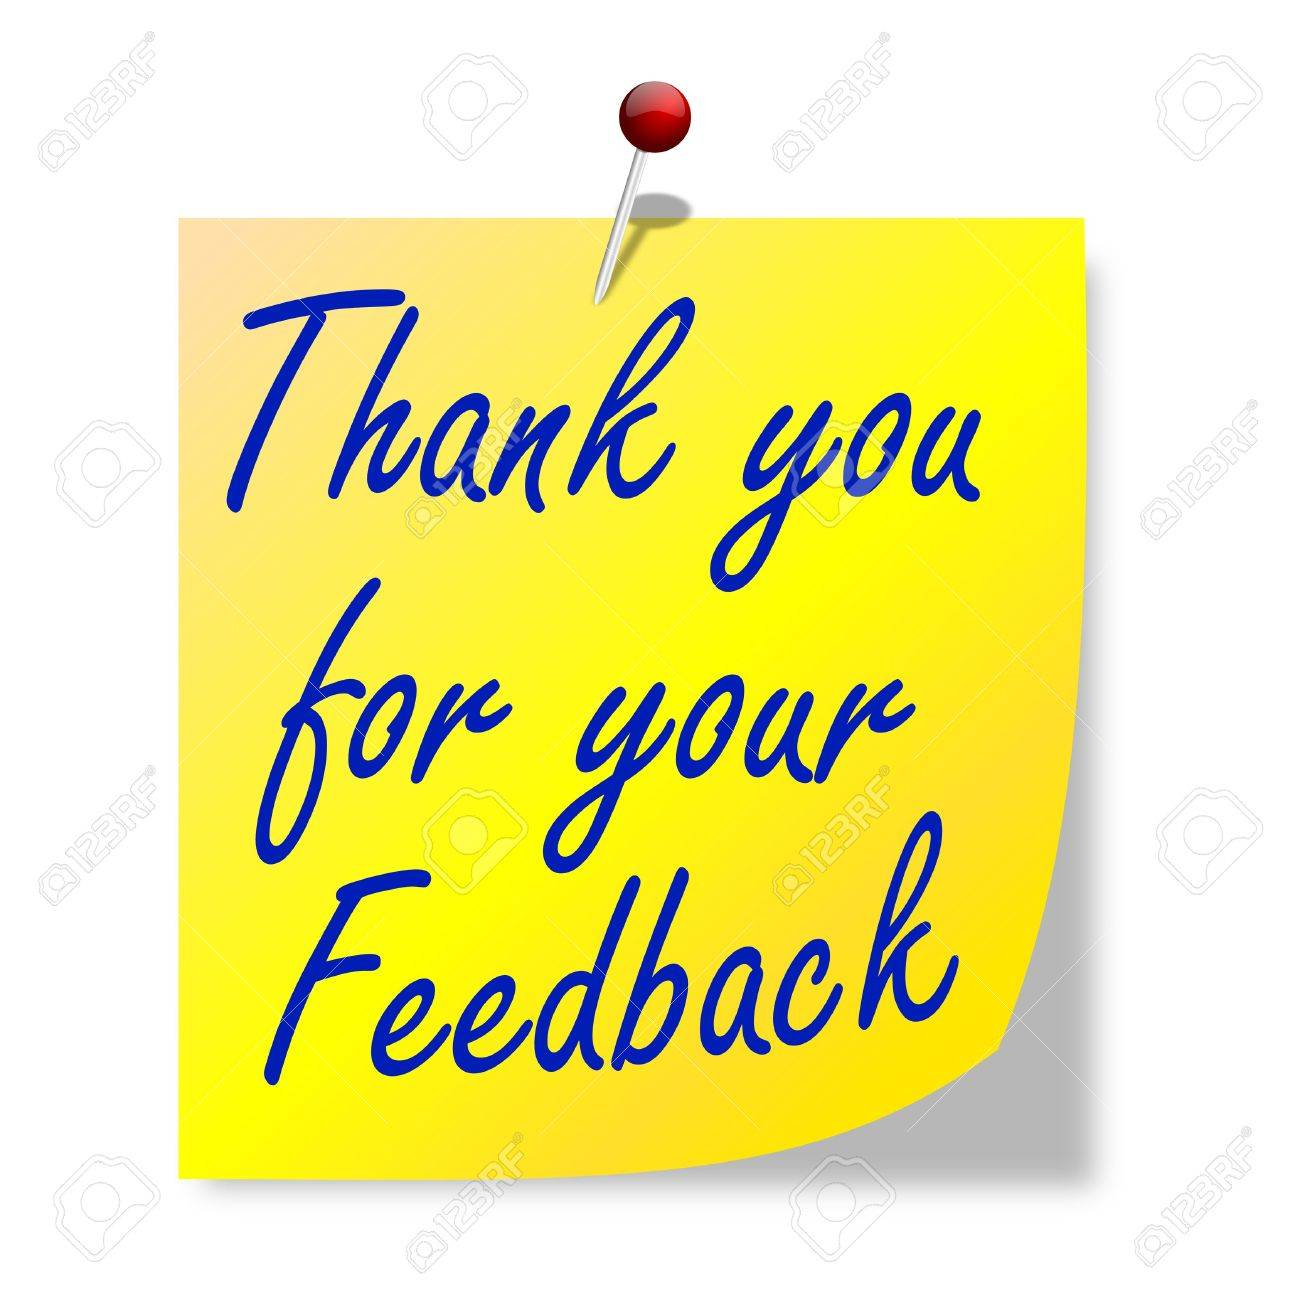 25470751-the-paper-with-the-words-thank-you-for-your-feedback.jpg